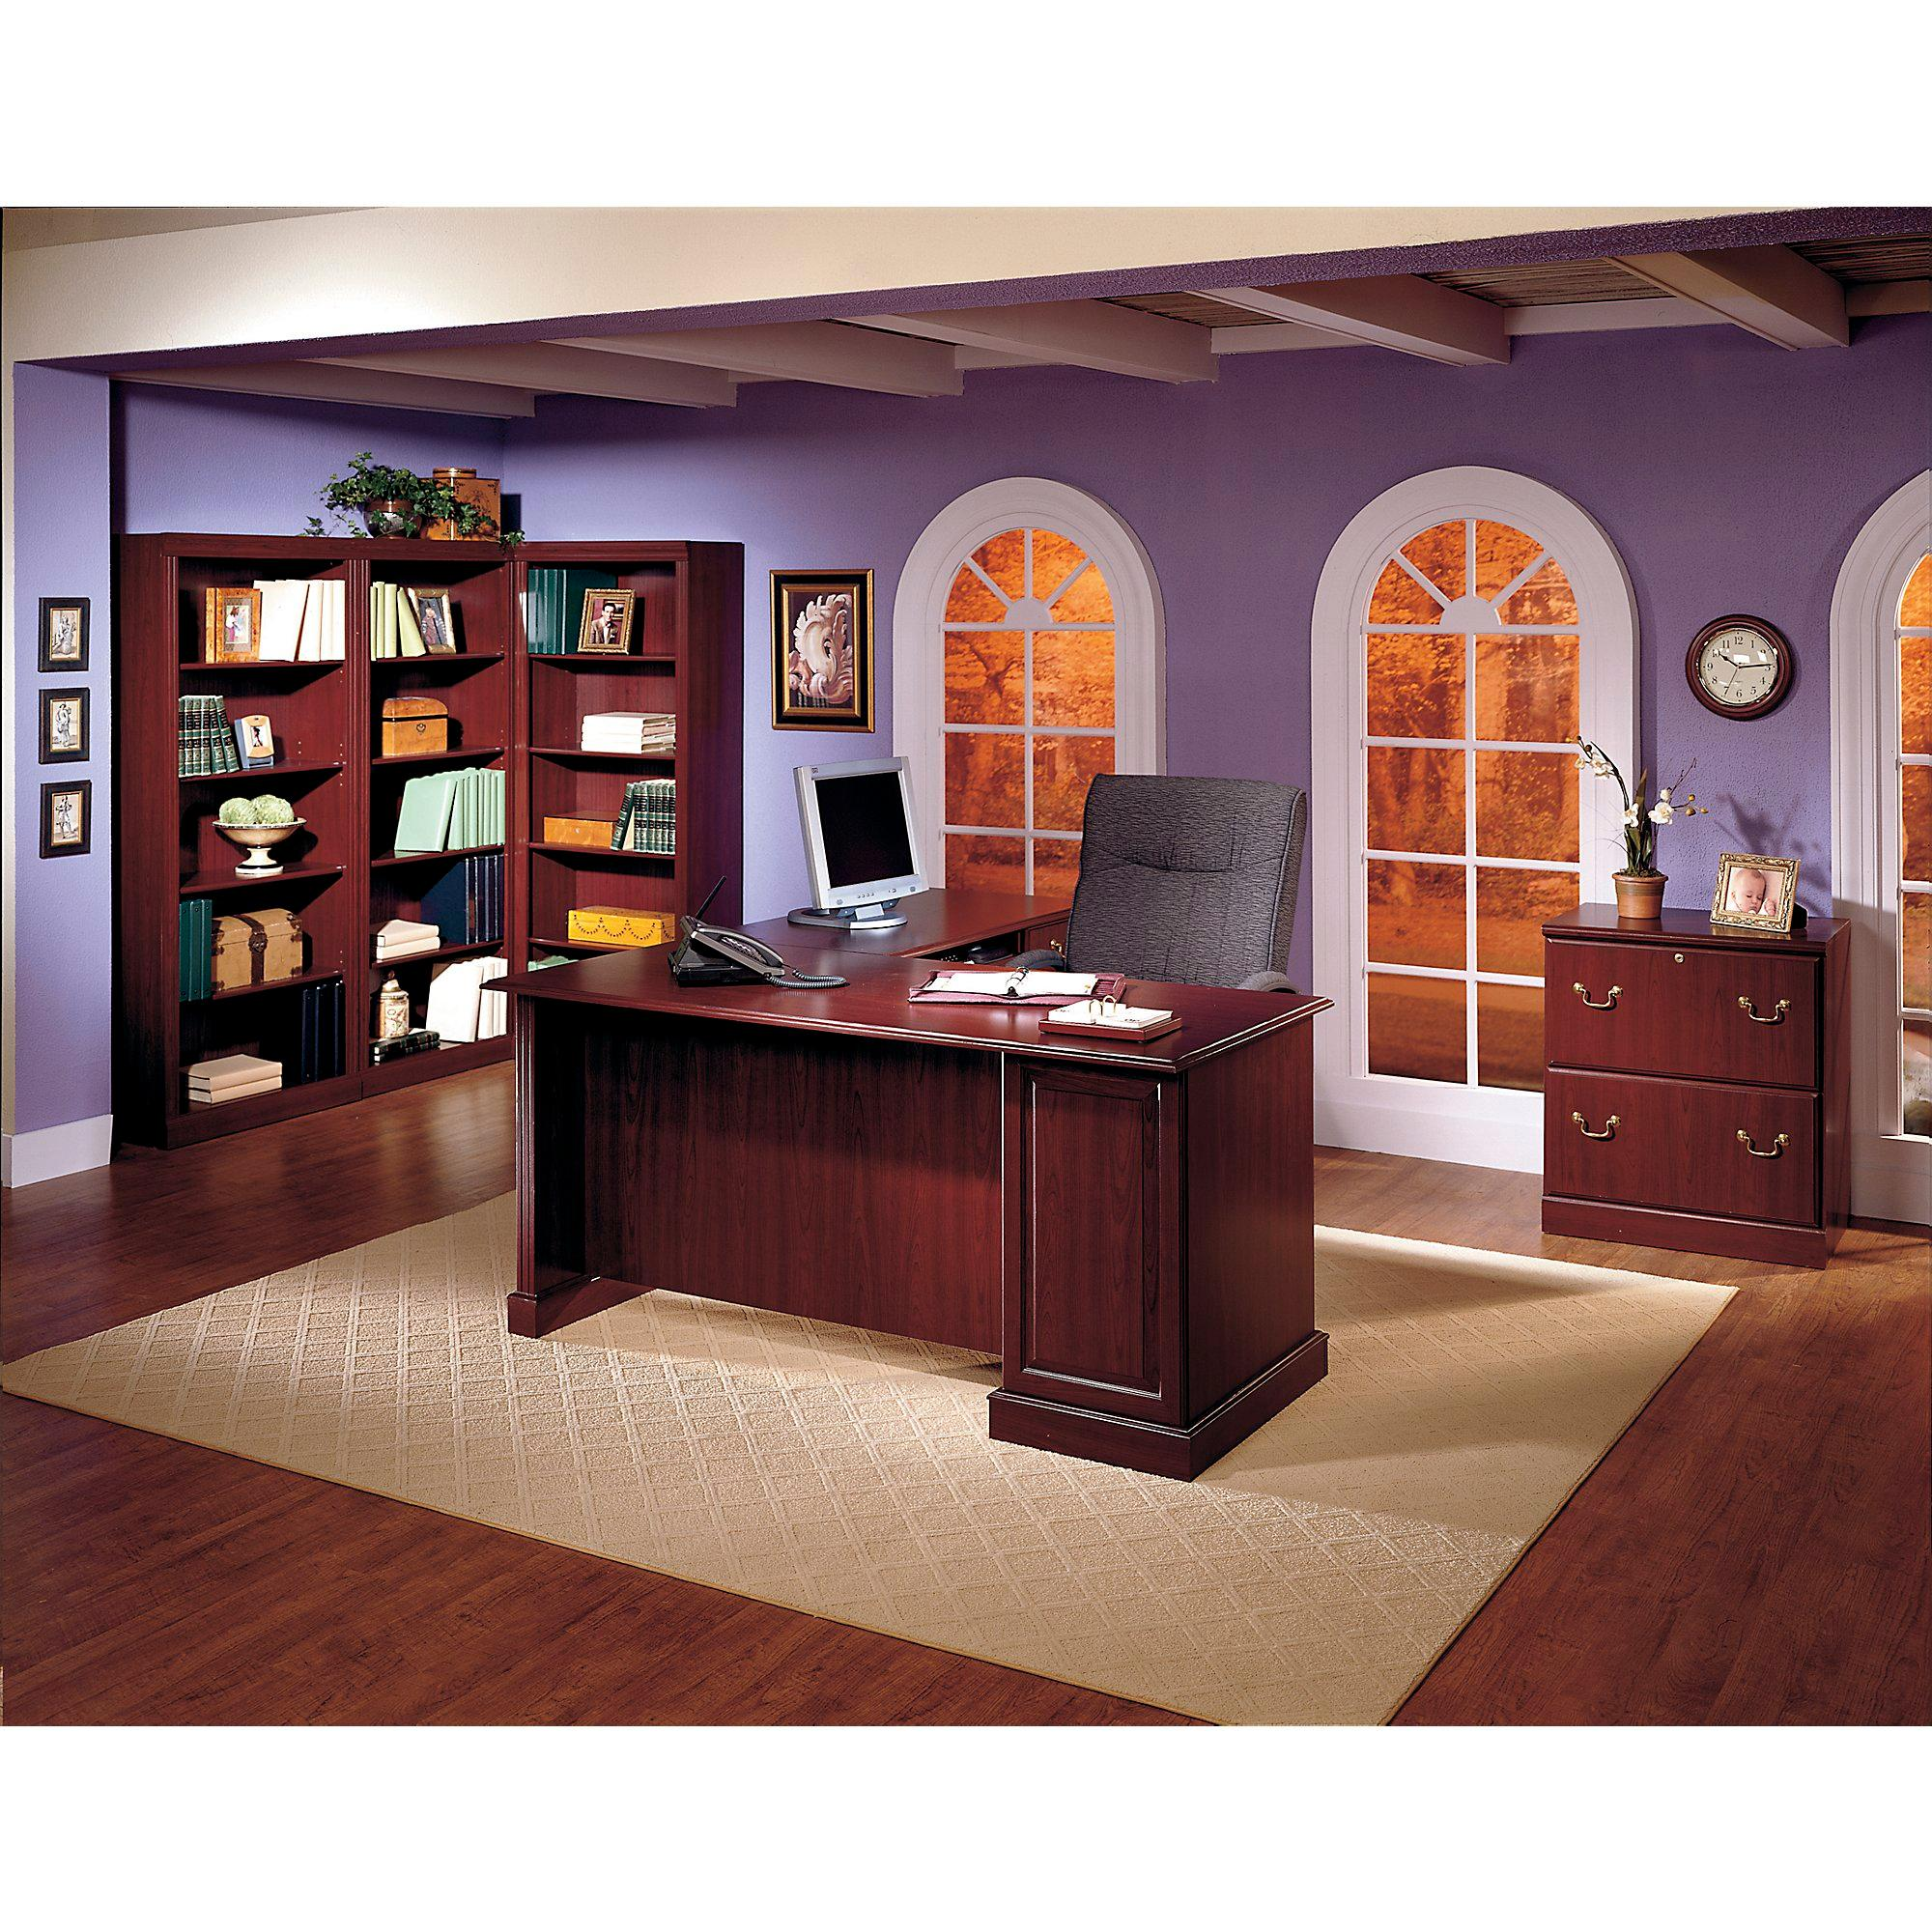 Amazon Com Saratoga Executive Desk In Harvest Cherry And